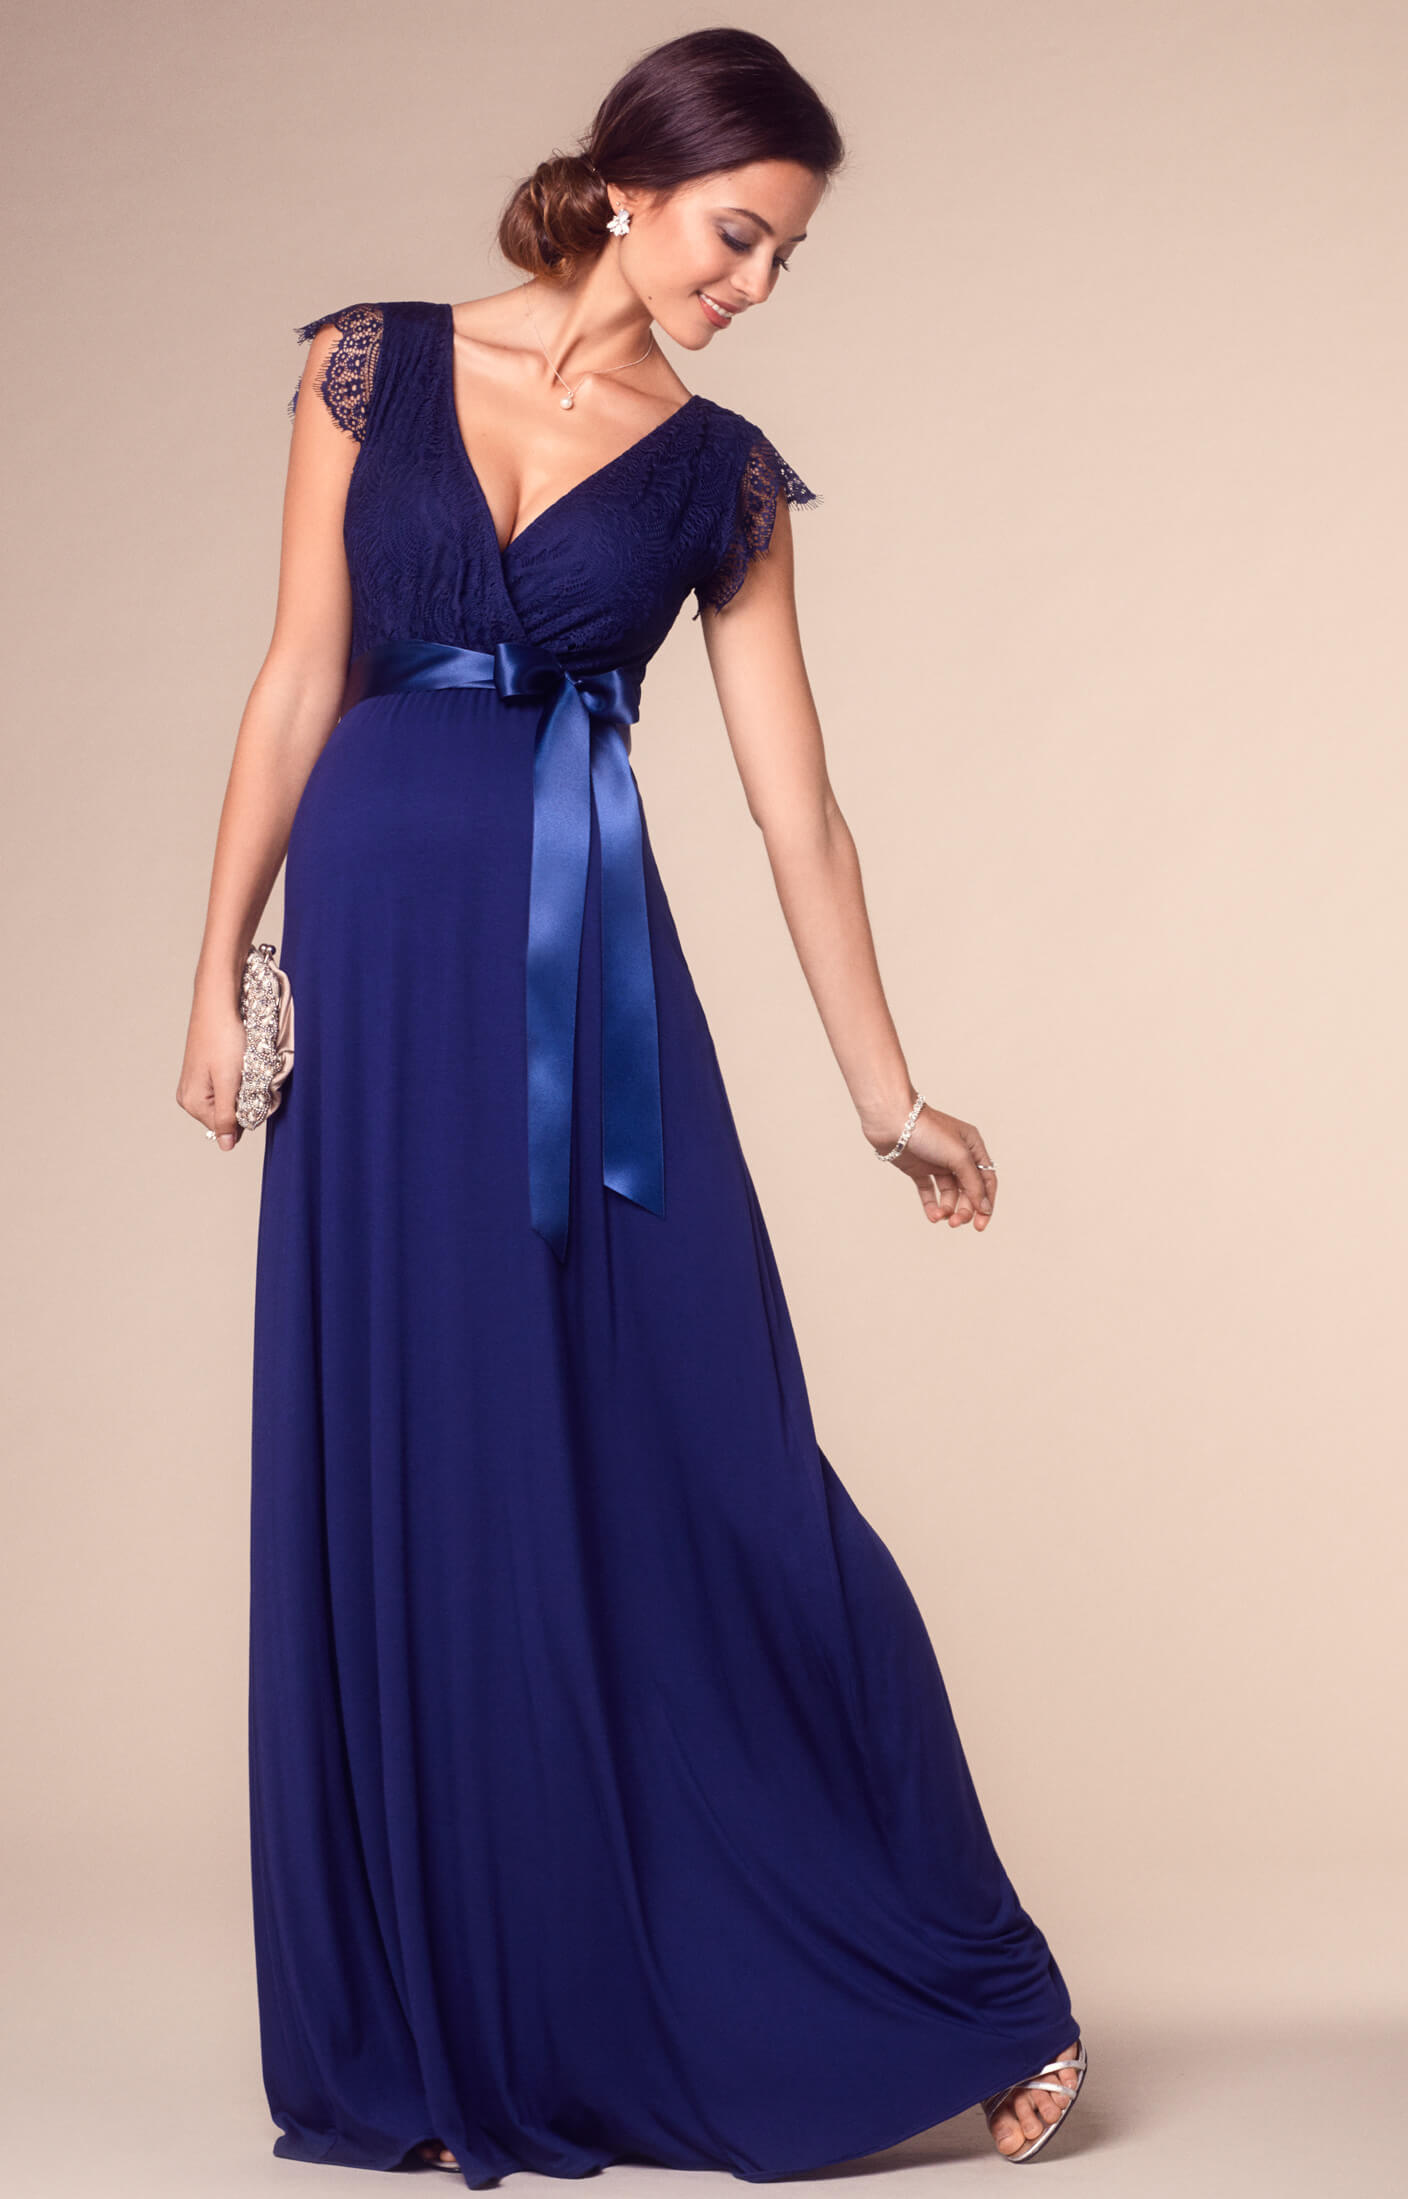 rosa maternity gown long indigo blue maternity wedding